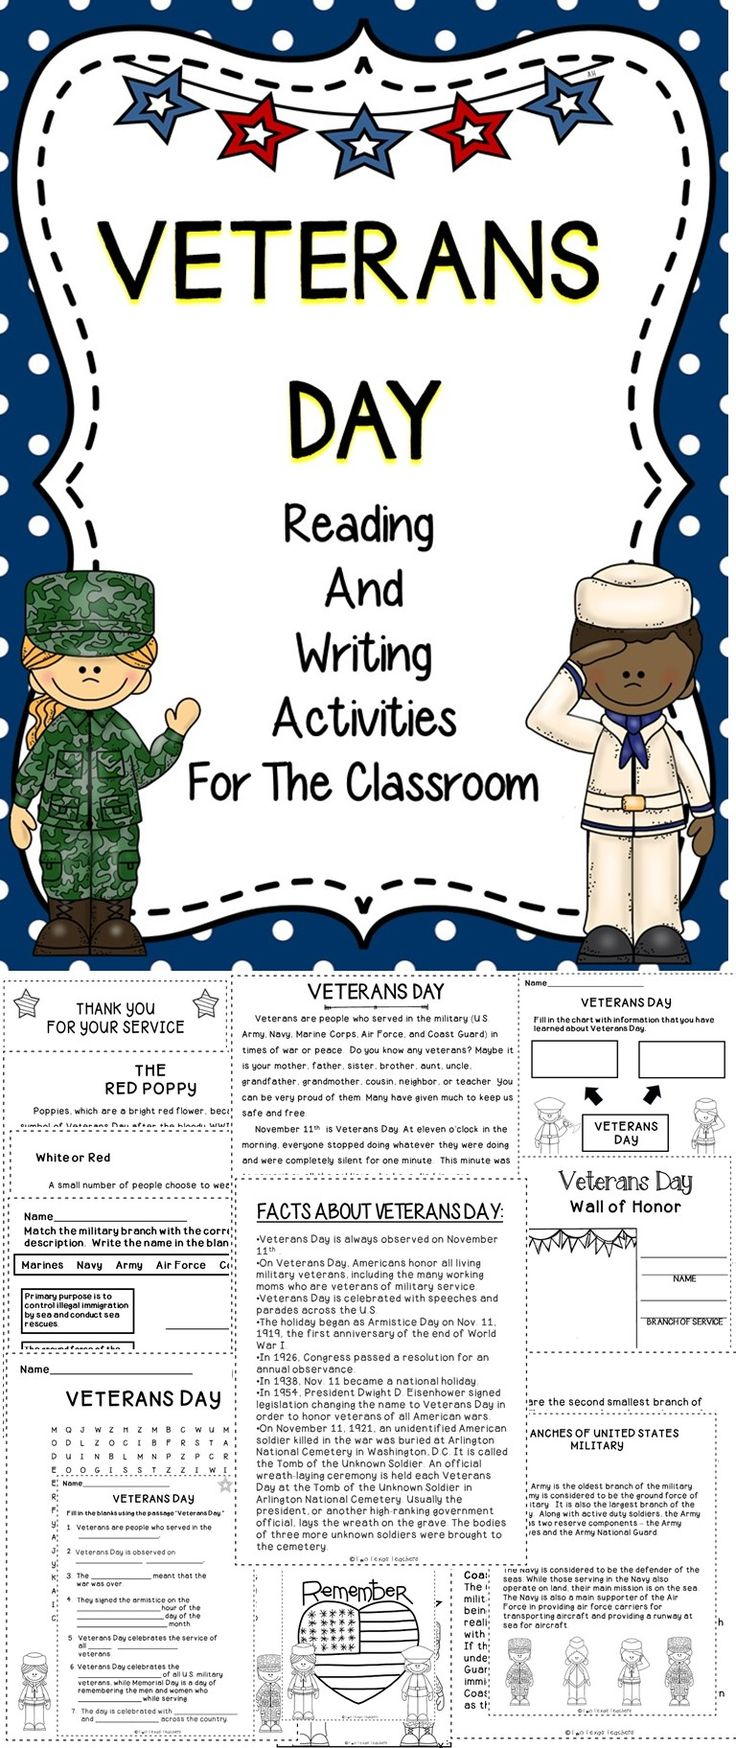 Veterans Day - This Veterans Day Supplemental Resource Provided Engaging Lessons To Celebrate This Important Holiday! This Veterans Day Resource Includes Reading And Writing Activities For The Classroom!